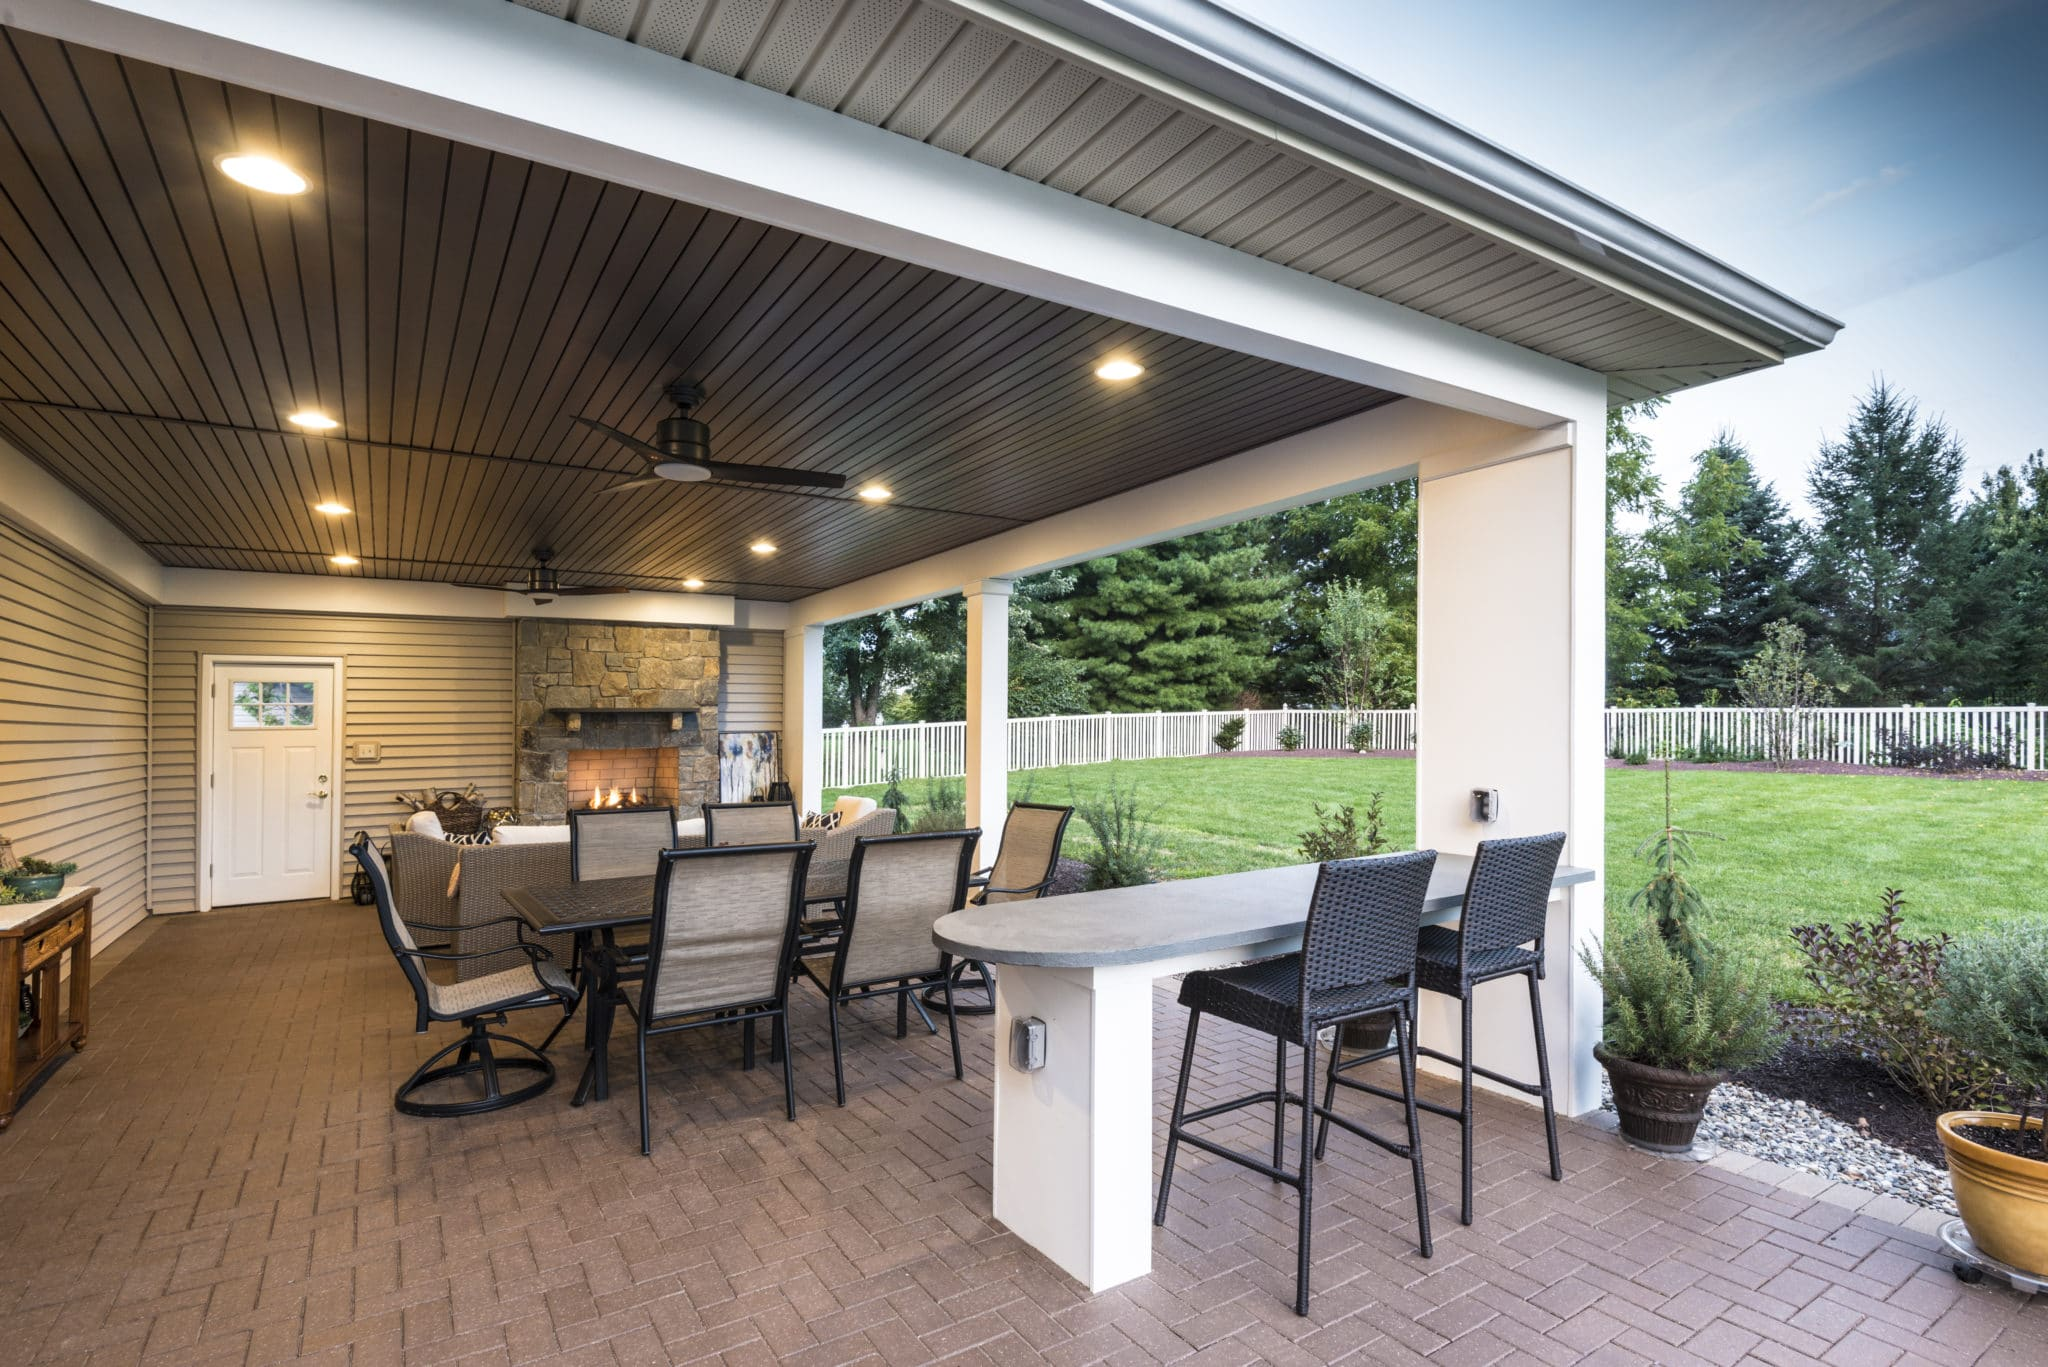 Outdoor Patio and Electric